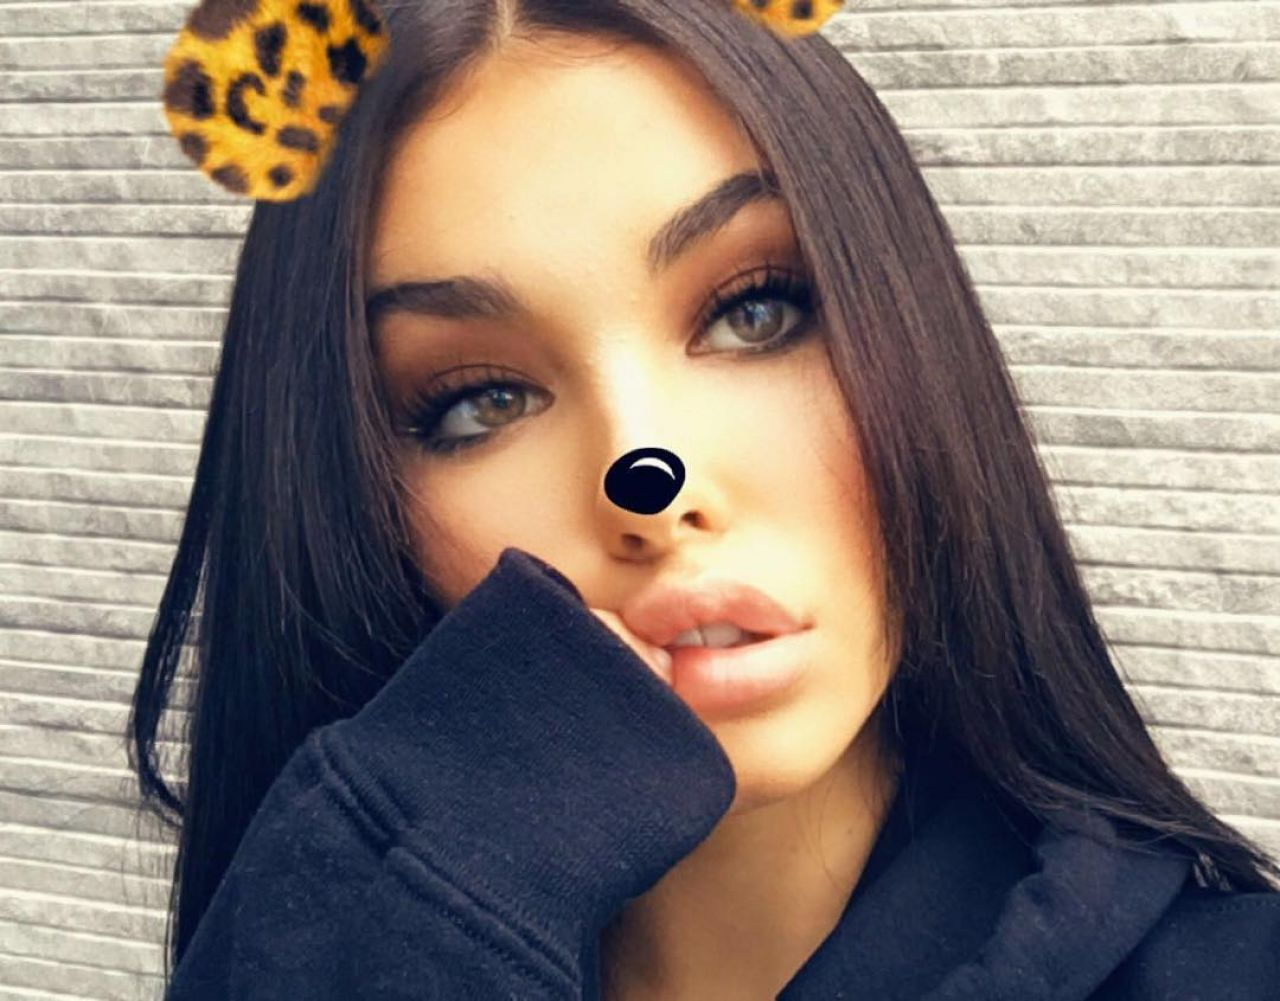 740b3d5ee81 Madison Beer – Facebook, Snapchat and Instagram Photos 3/30/2017